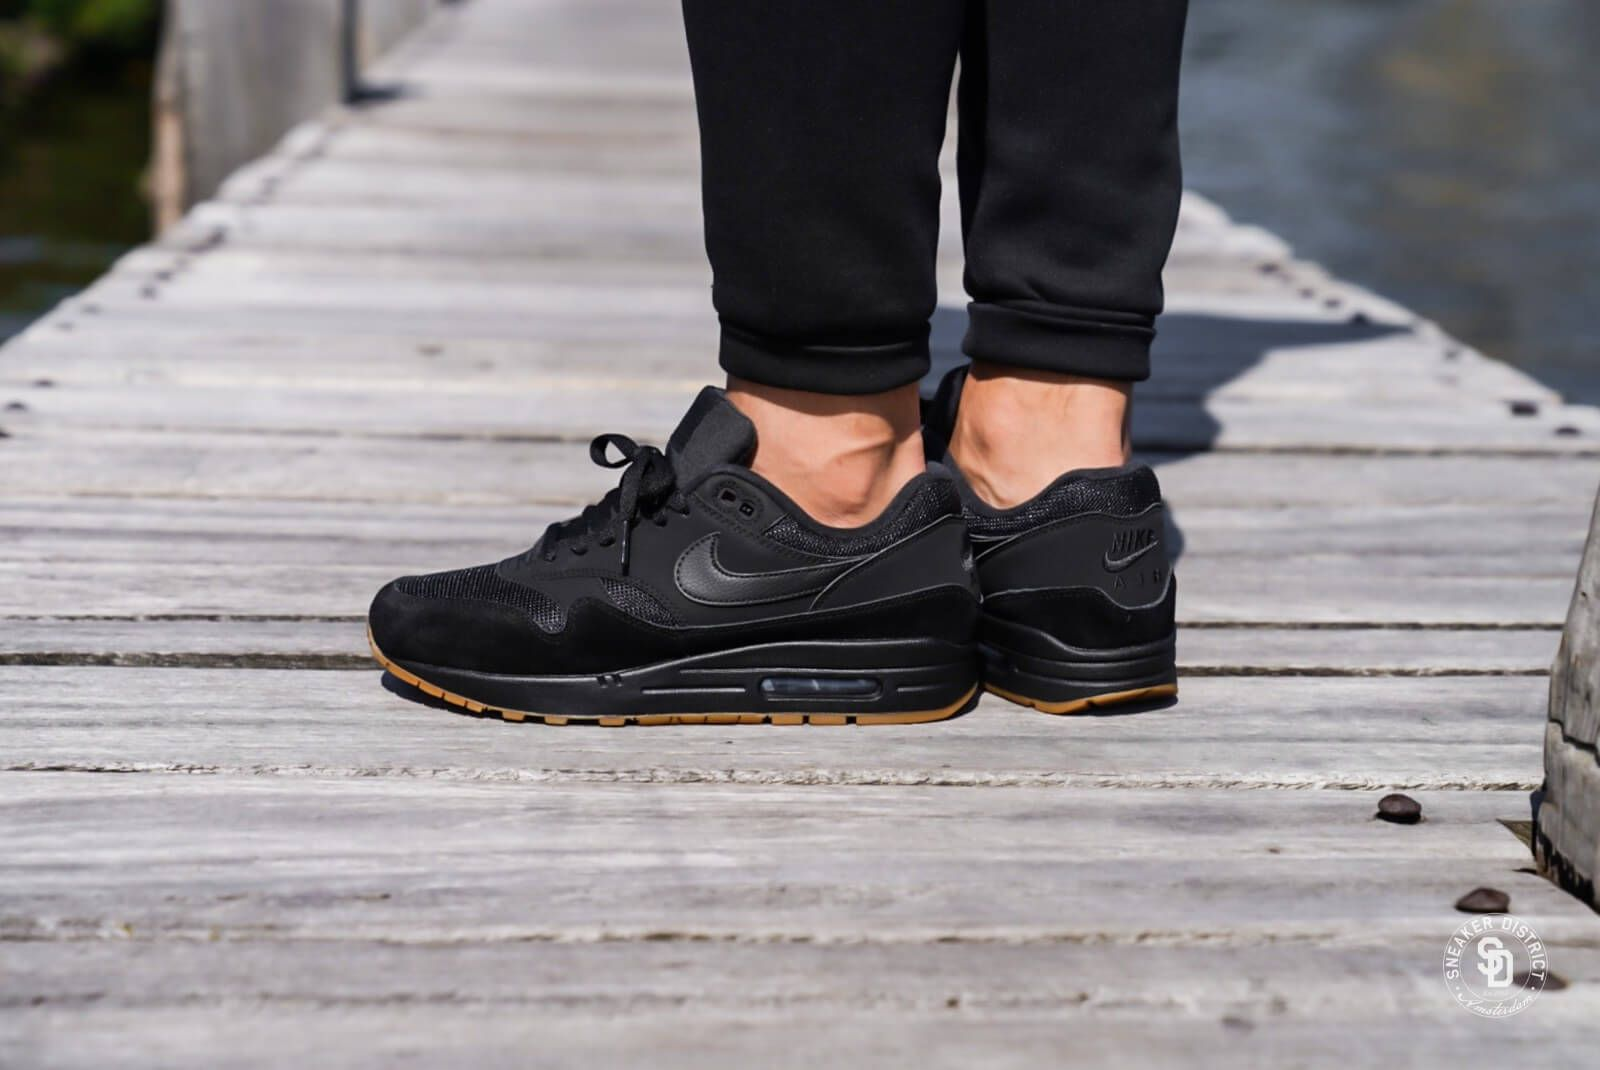 Nike Air Max 1 Black/Black-Gum - AH8145-007 - Max black ...